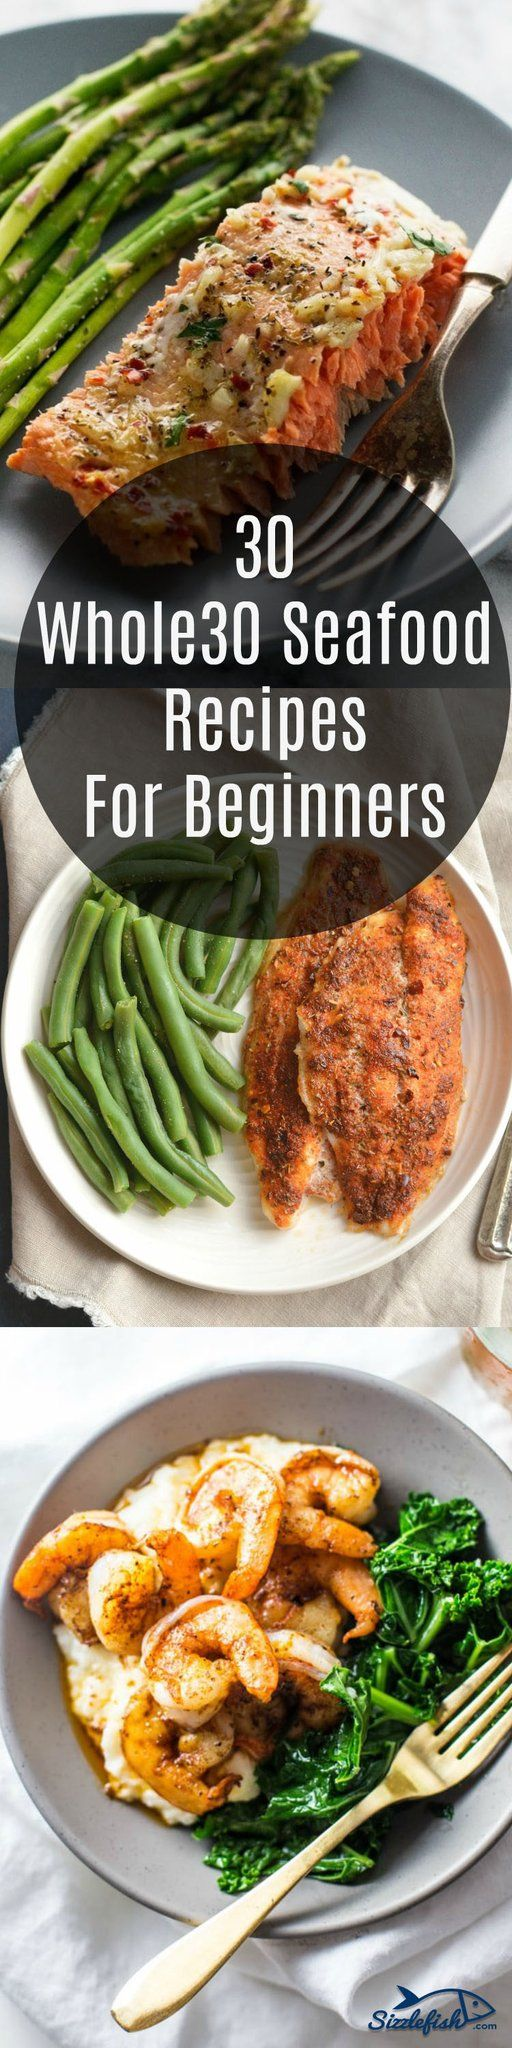 We have compiled a list of 30 Whole30 Seafood Recipes For Beginners (and non-beginners) to make your journey back to clean eating healthy, fresh and fast.